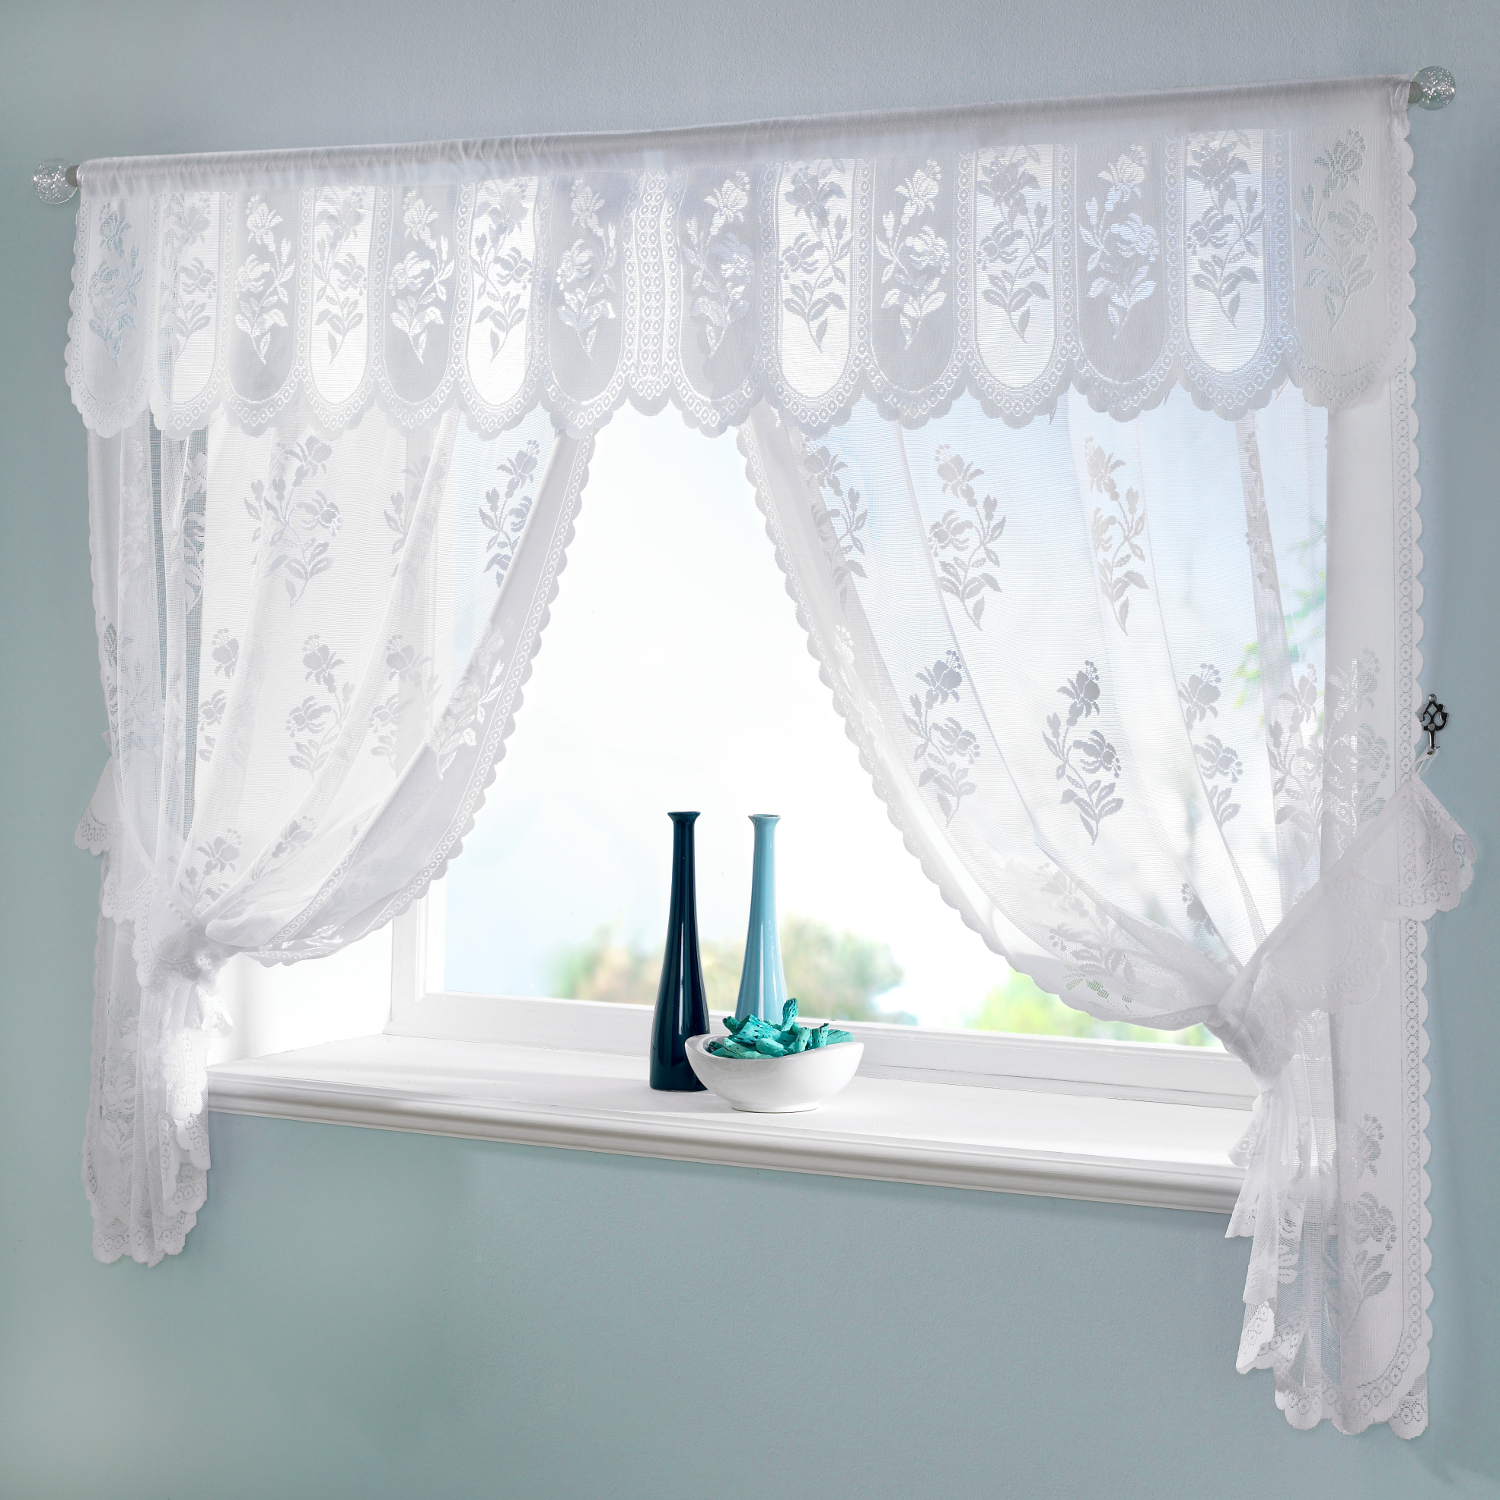 Diy Blinds Online Floral Net Curtain Window Set Traditional Susan Scalloped